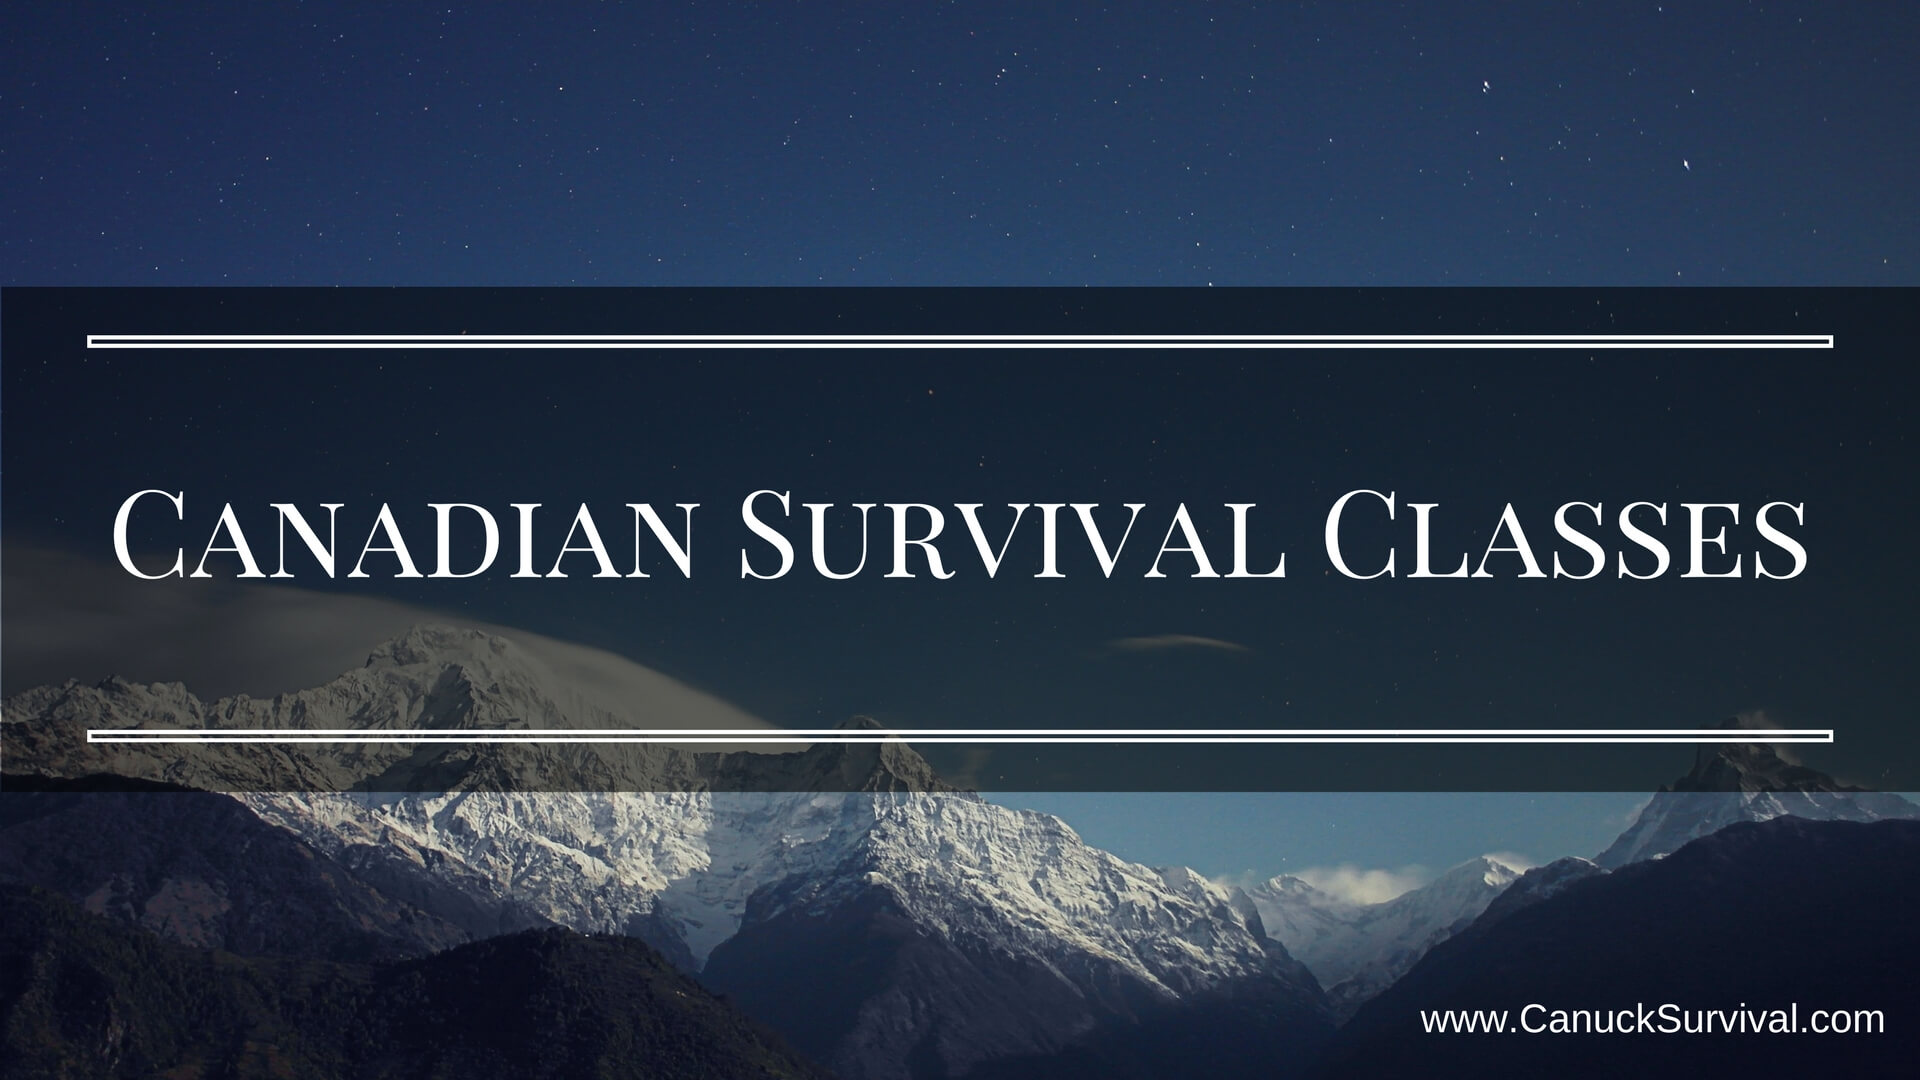 Canadian Survival Classes